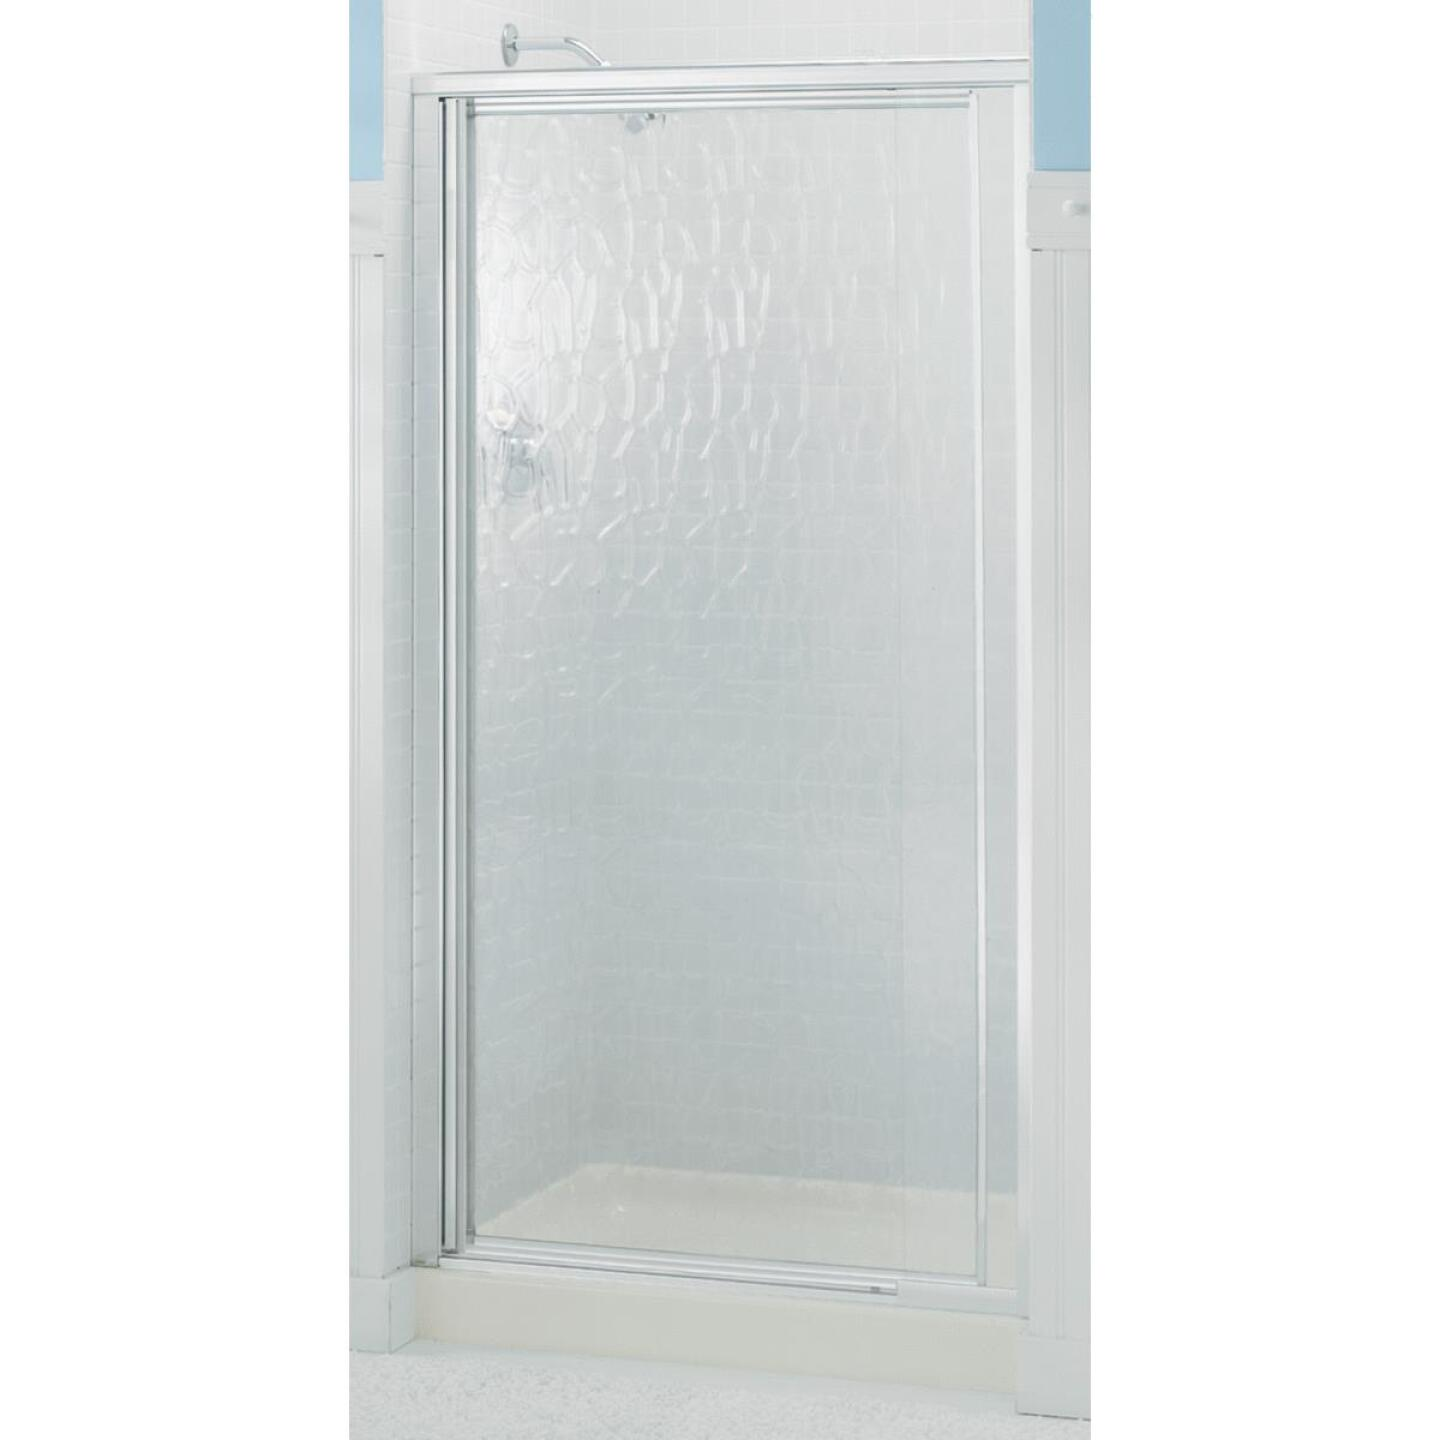 Sterling Vista Pivot II 27-1/2 In. W. X 65-1/2 In. H. Chrome Pebbled Glass Shower Door Image 1